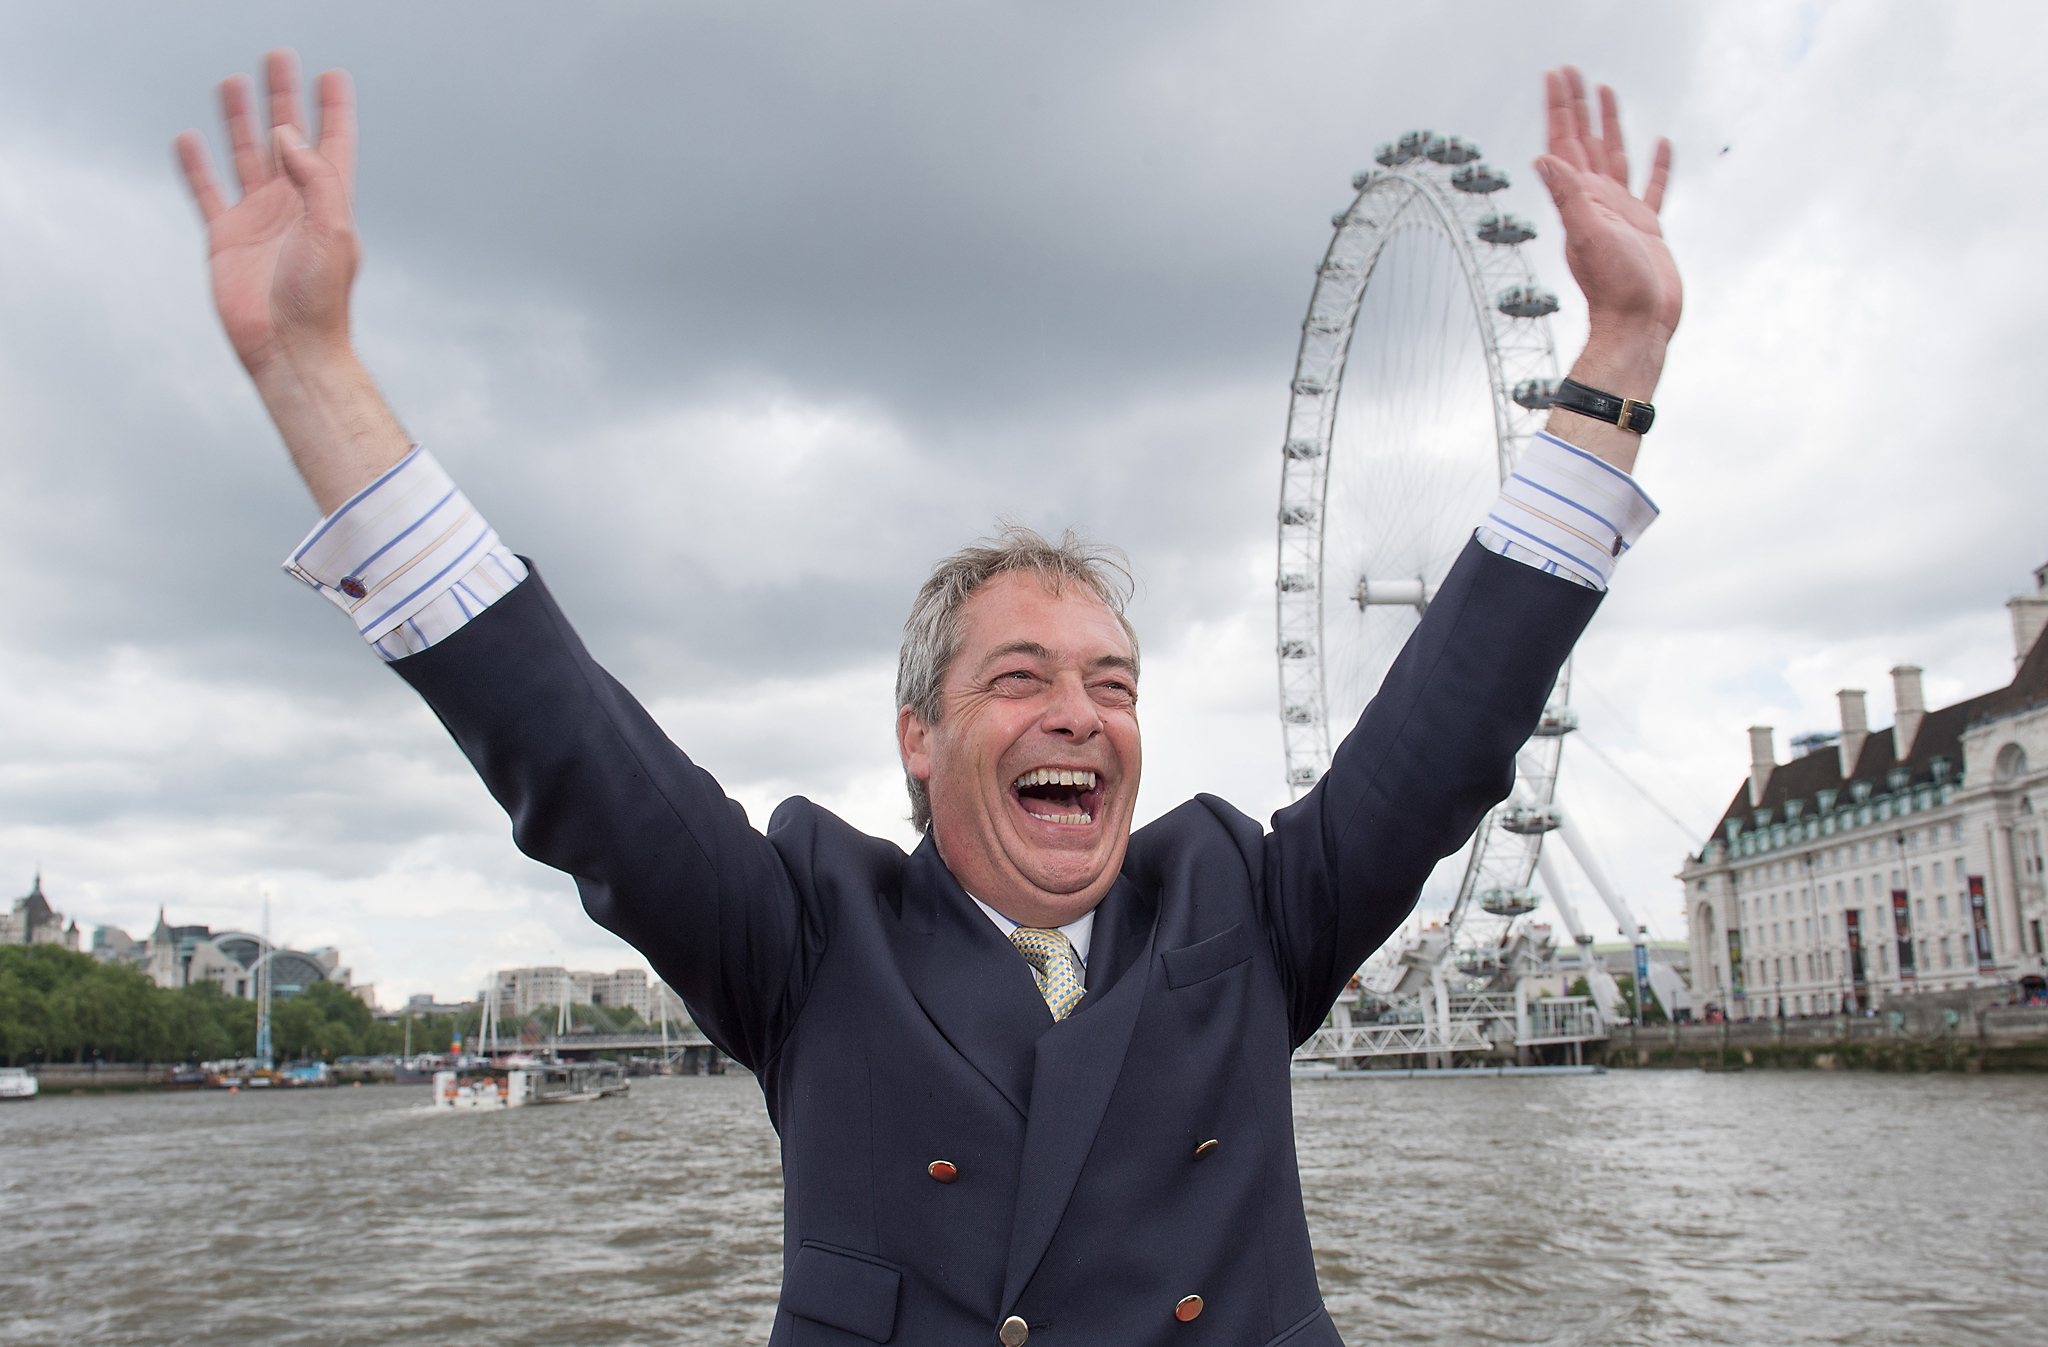 LONDON, ENGLAND - JUNE 15:  Nigel Farage, leader of the UK Independence Party shows his support for the 'Leave' campaign for the upcoming EU Referendum aboard a boat on the River Thames on June 15, 2016 in London, England.  Nigel Farage, leader of UKIP, is campaigning for the United Kingdom to leave the European Union in a referendum being held on June 23, 2016.  (Photo by Jeff Spicer